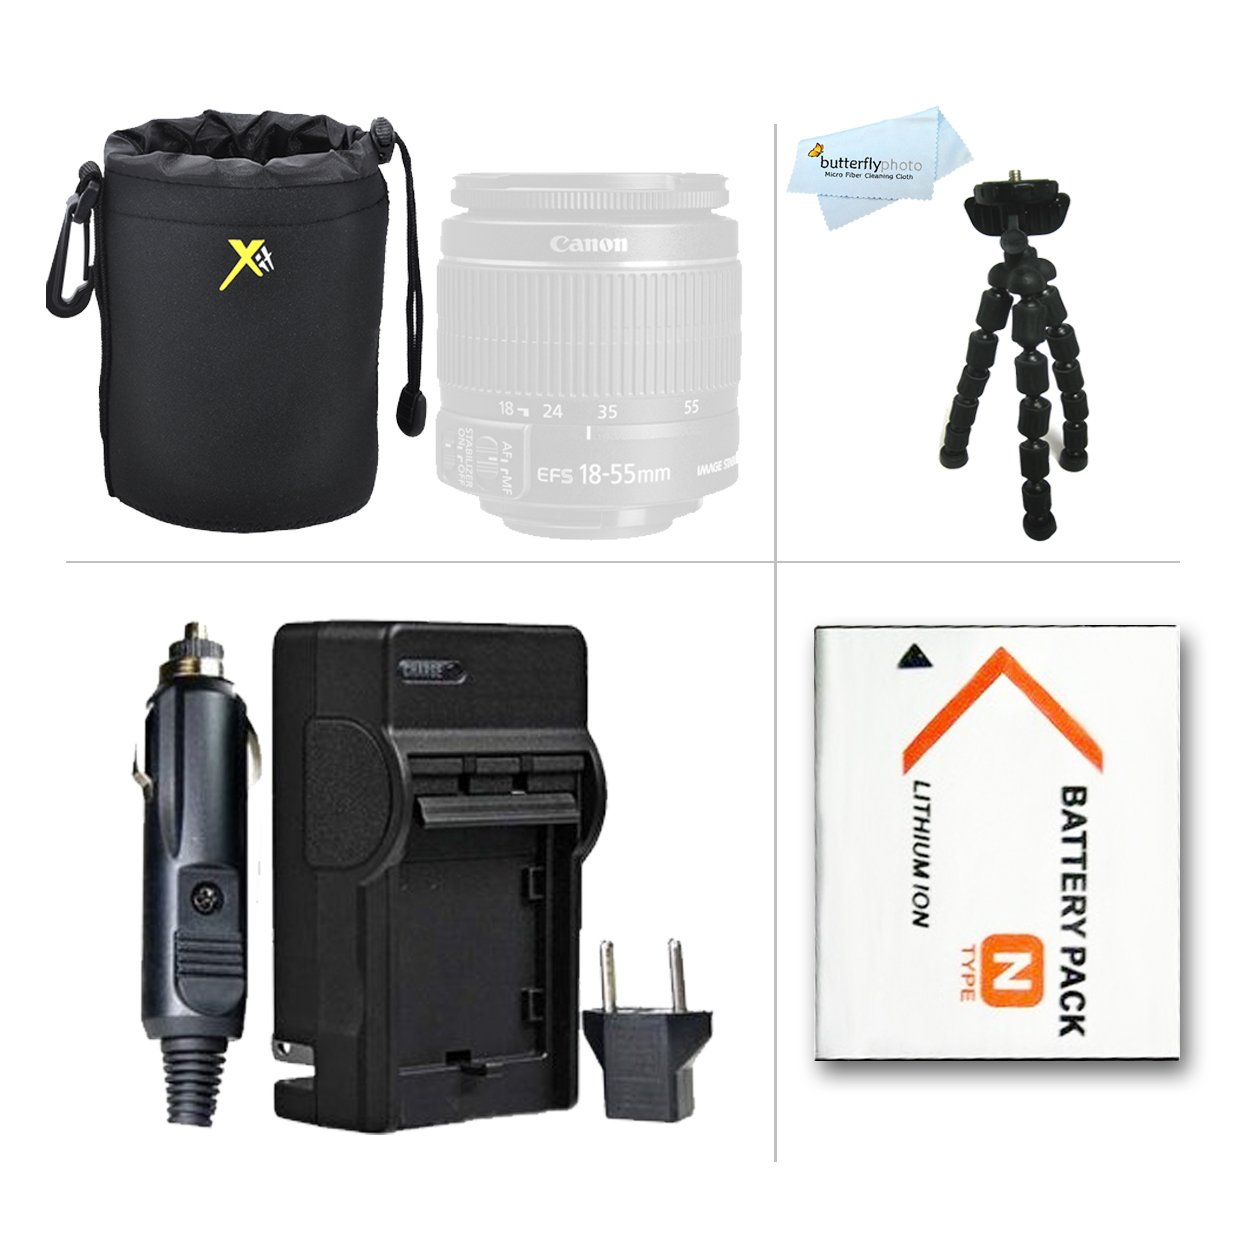 Must Have Accessories Kit For Sony Cyber-shot DSC-QX10, DSC-QX100, QX100/B DSC-QX10/W DSC-QX10/B QX30 Smartphone Attachable Lens-style Camera Includes Extended Replacement (1100Mah) NP-BN1 Battery + Charger + Neoprene Soft Lens Case + 12 Flexible Tripod +